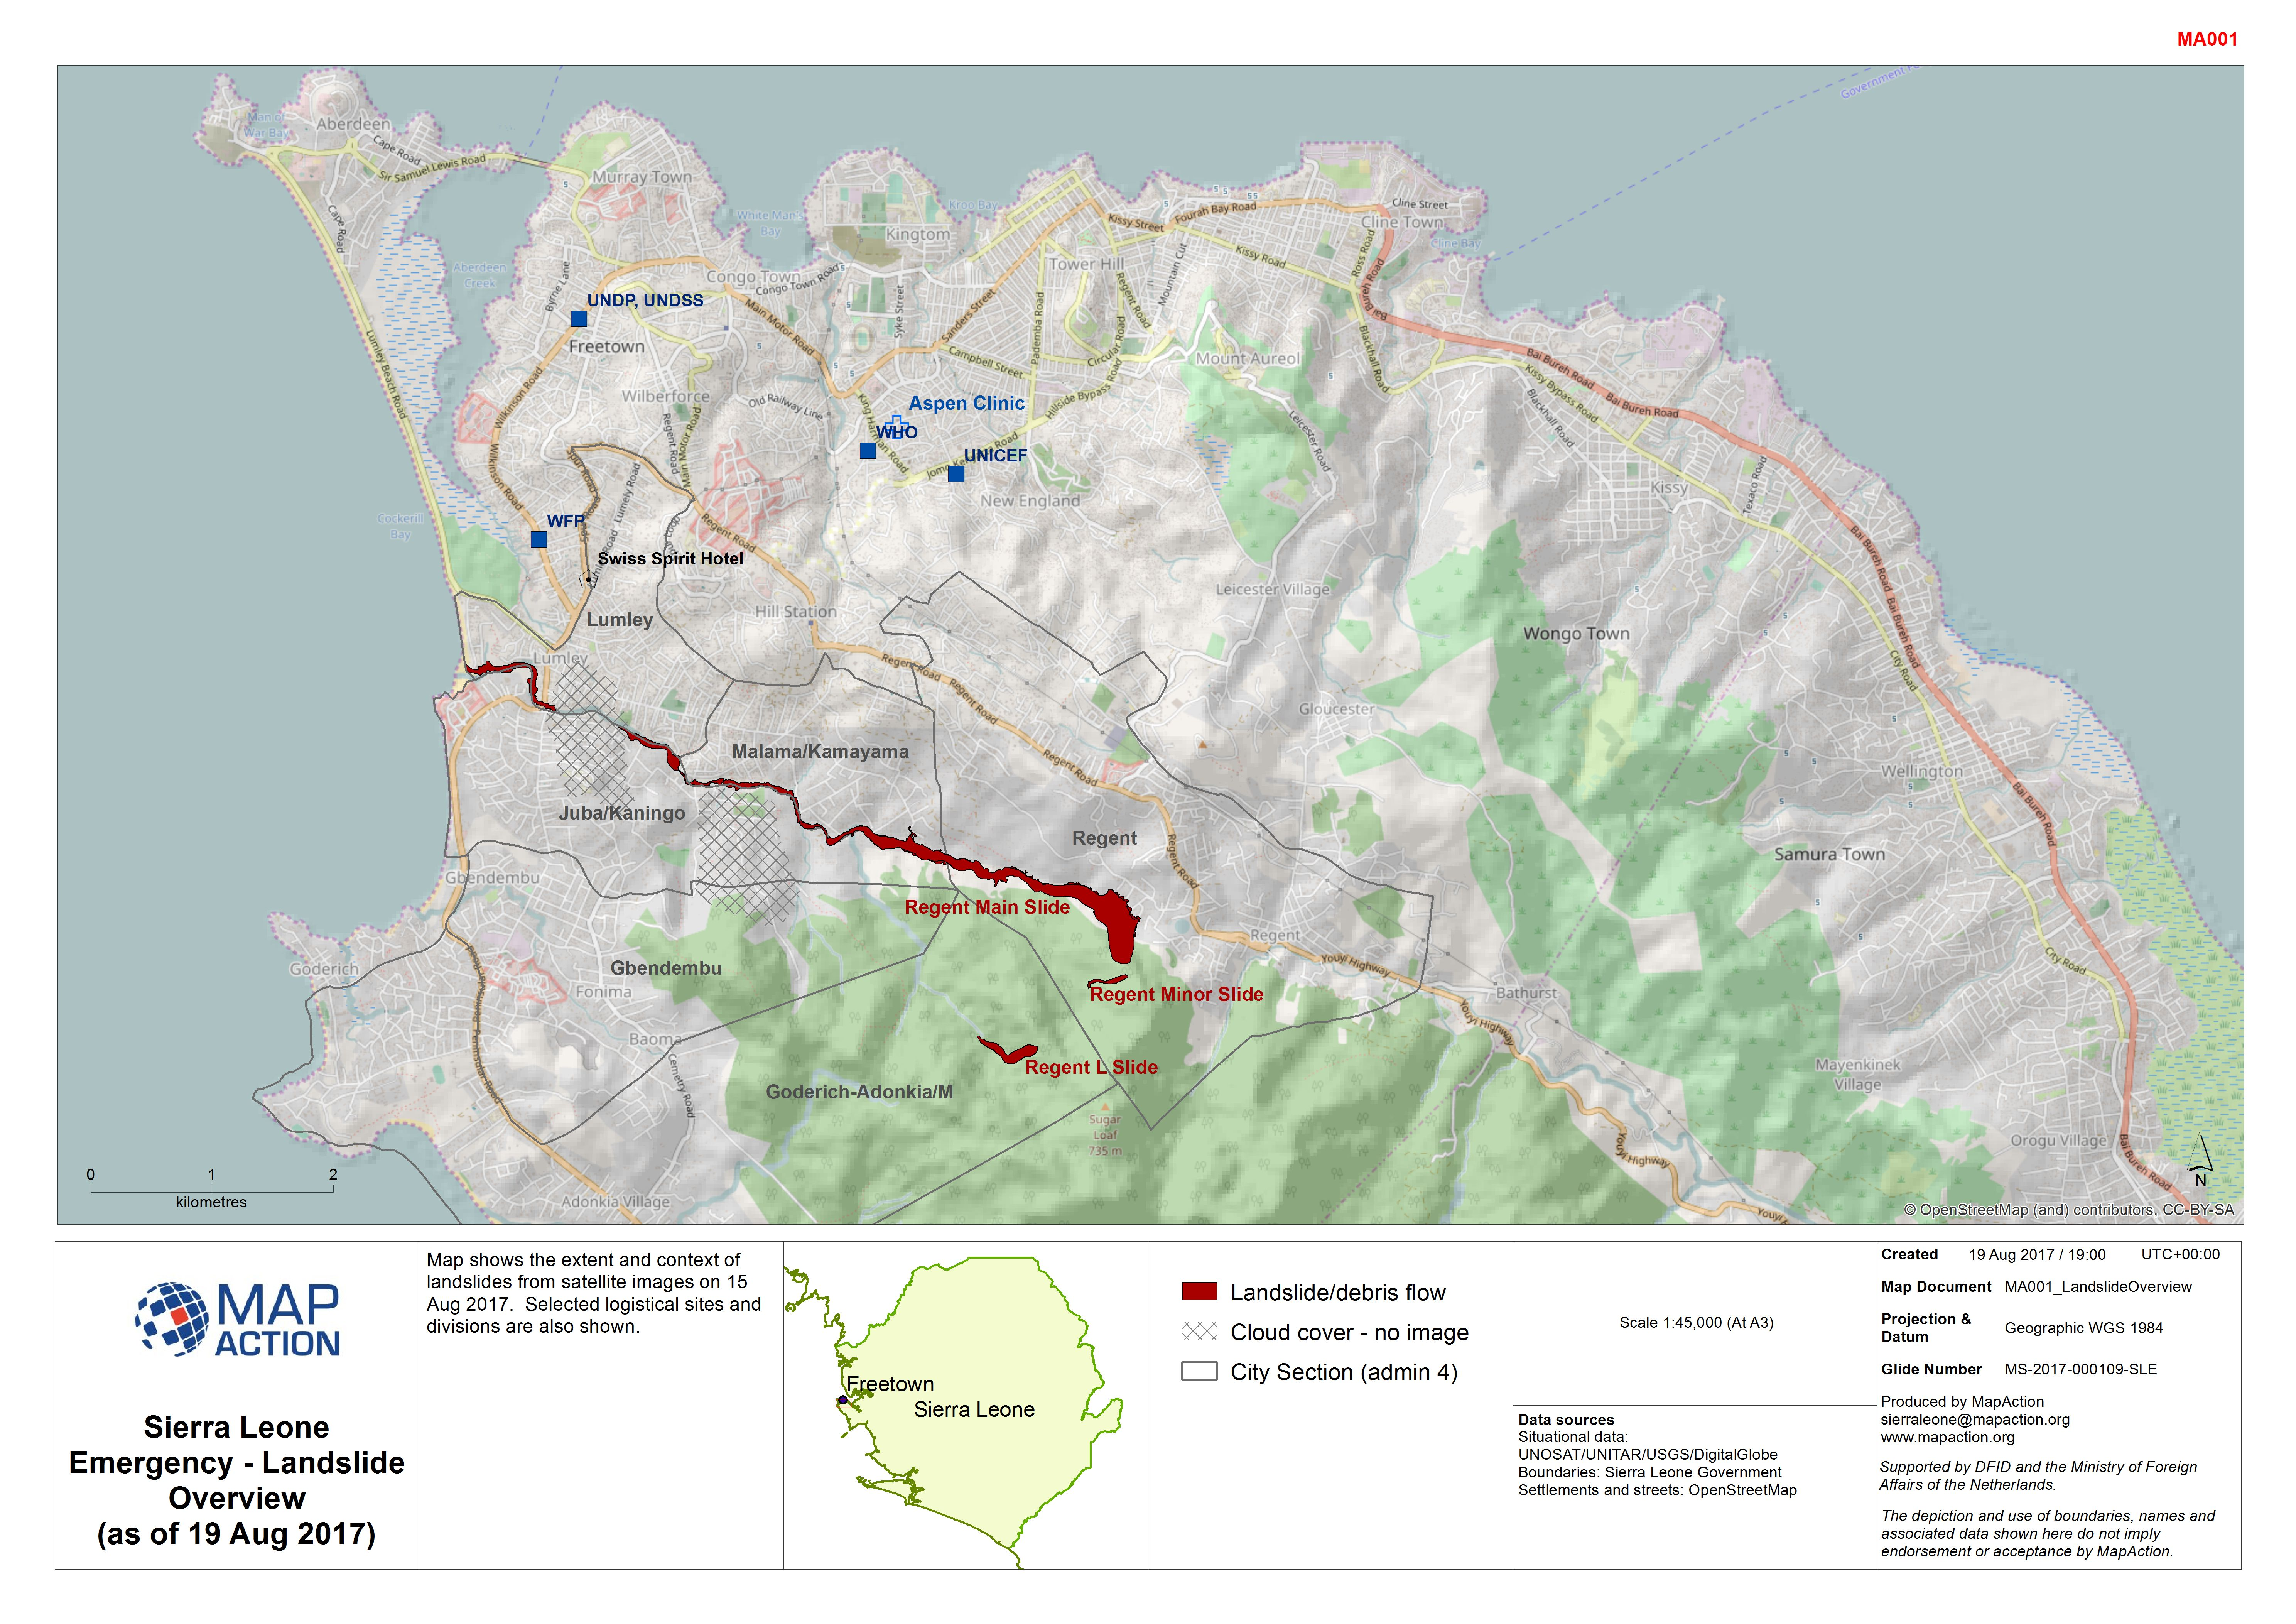 Sierra leone emergency landslide overview as of 19 aug 2017 download gumiabroncs Images